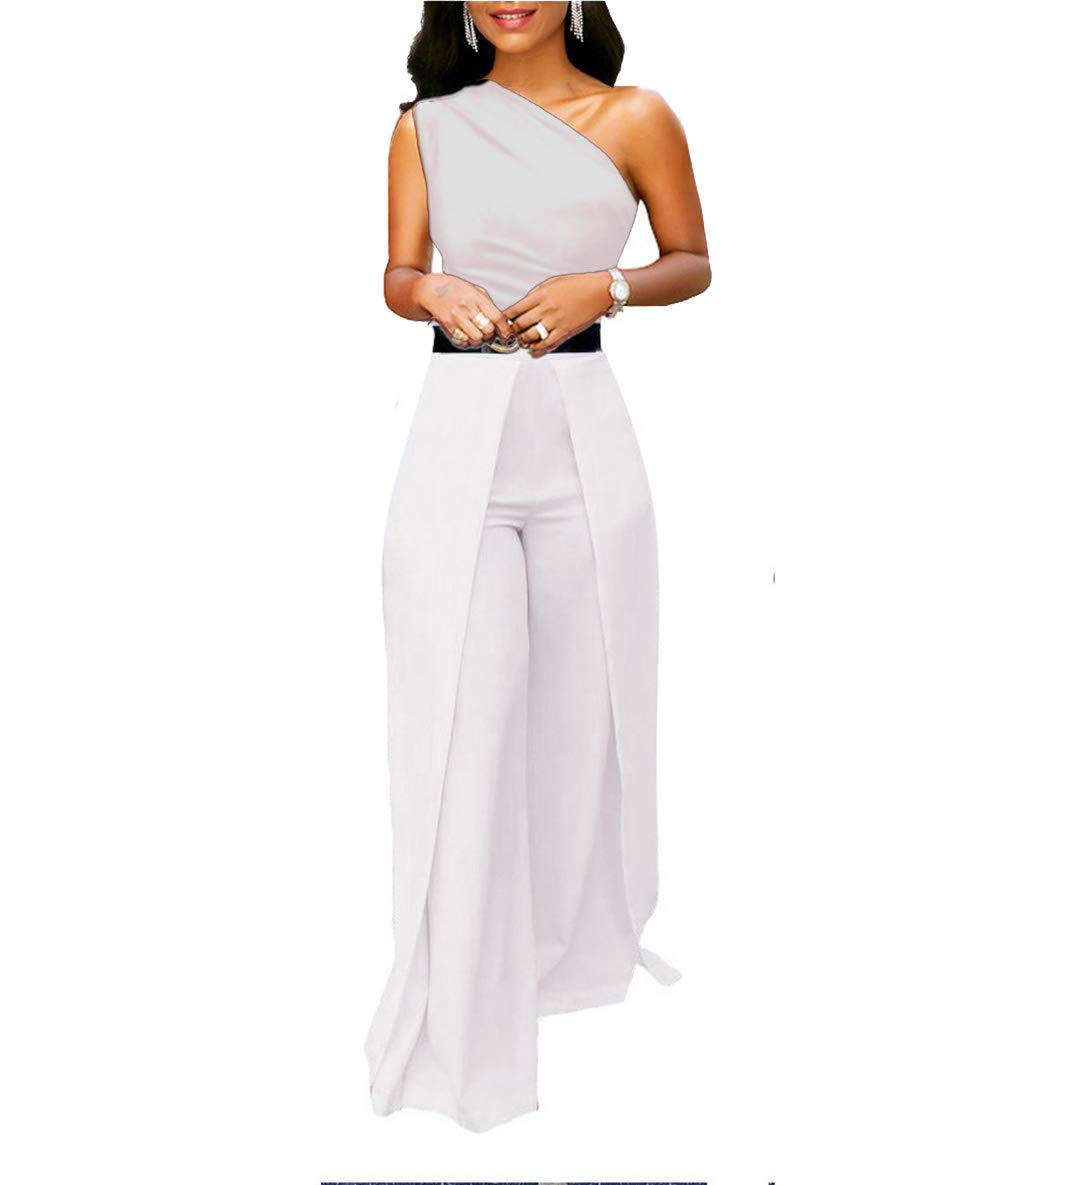 Chic-Lover Women's Sexy One Off Shoulder High Waisted Wide Leg Jumpsuits Romper Without Belt White S